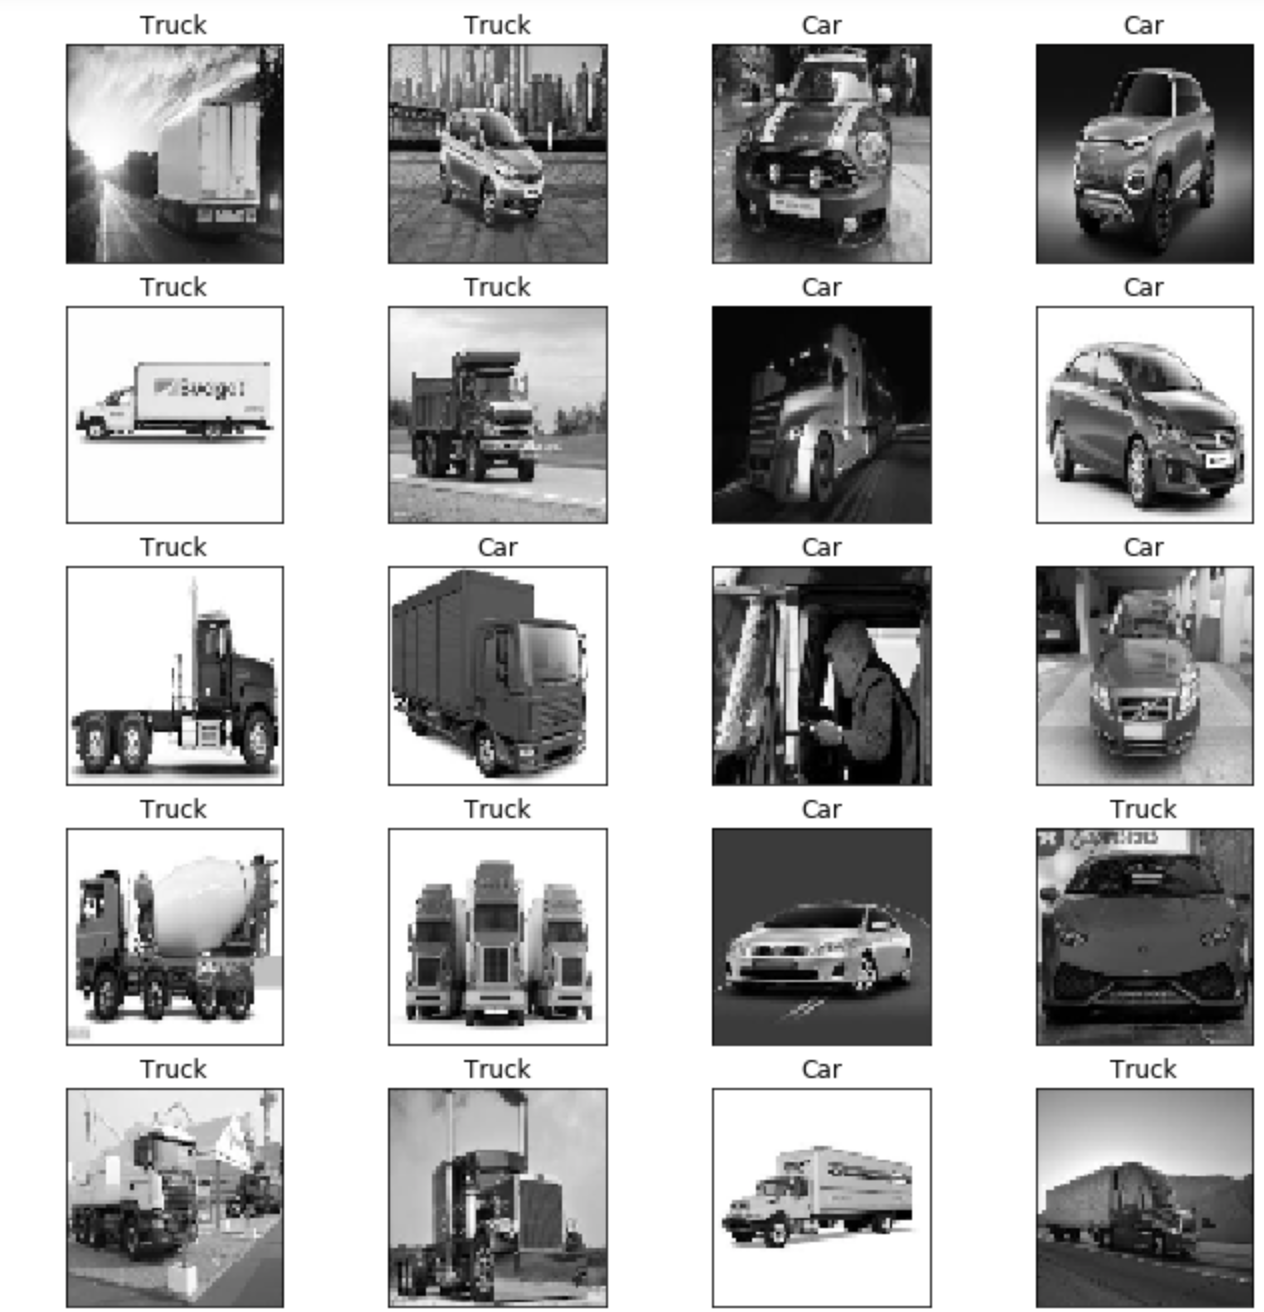 Build your own Image classifier with Tensorflow and Keras